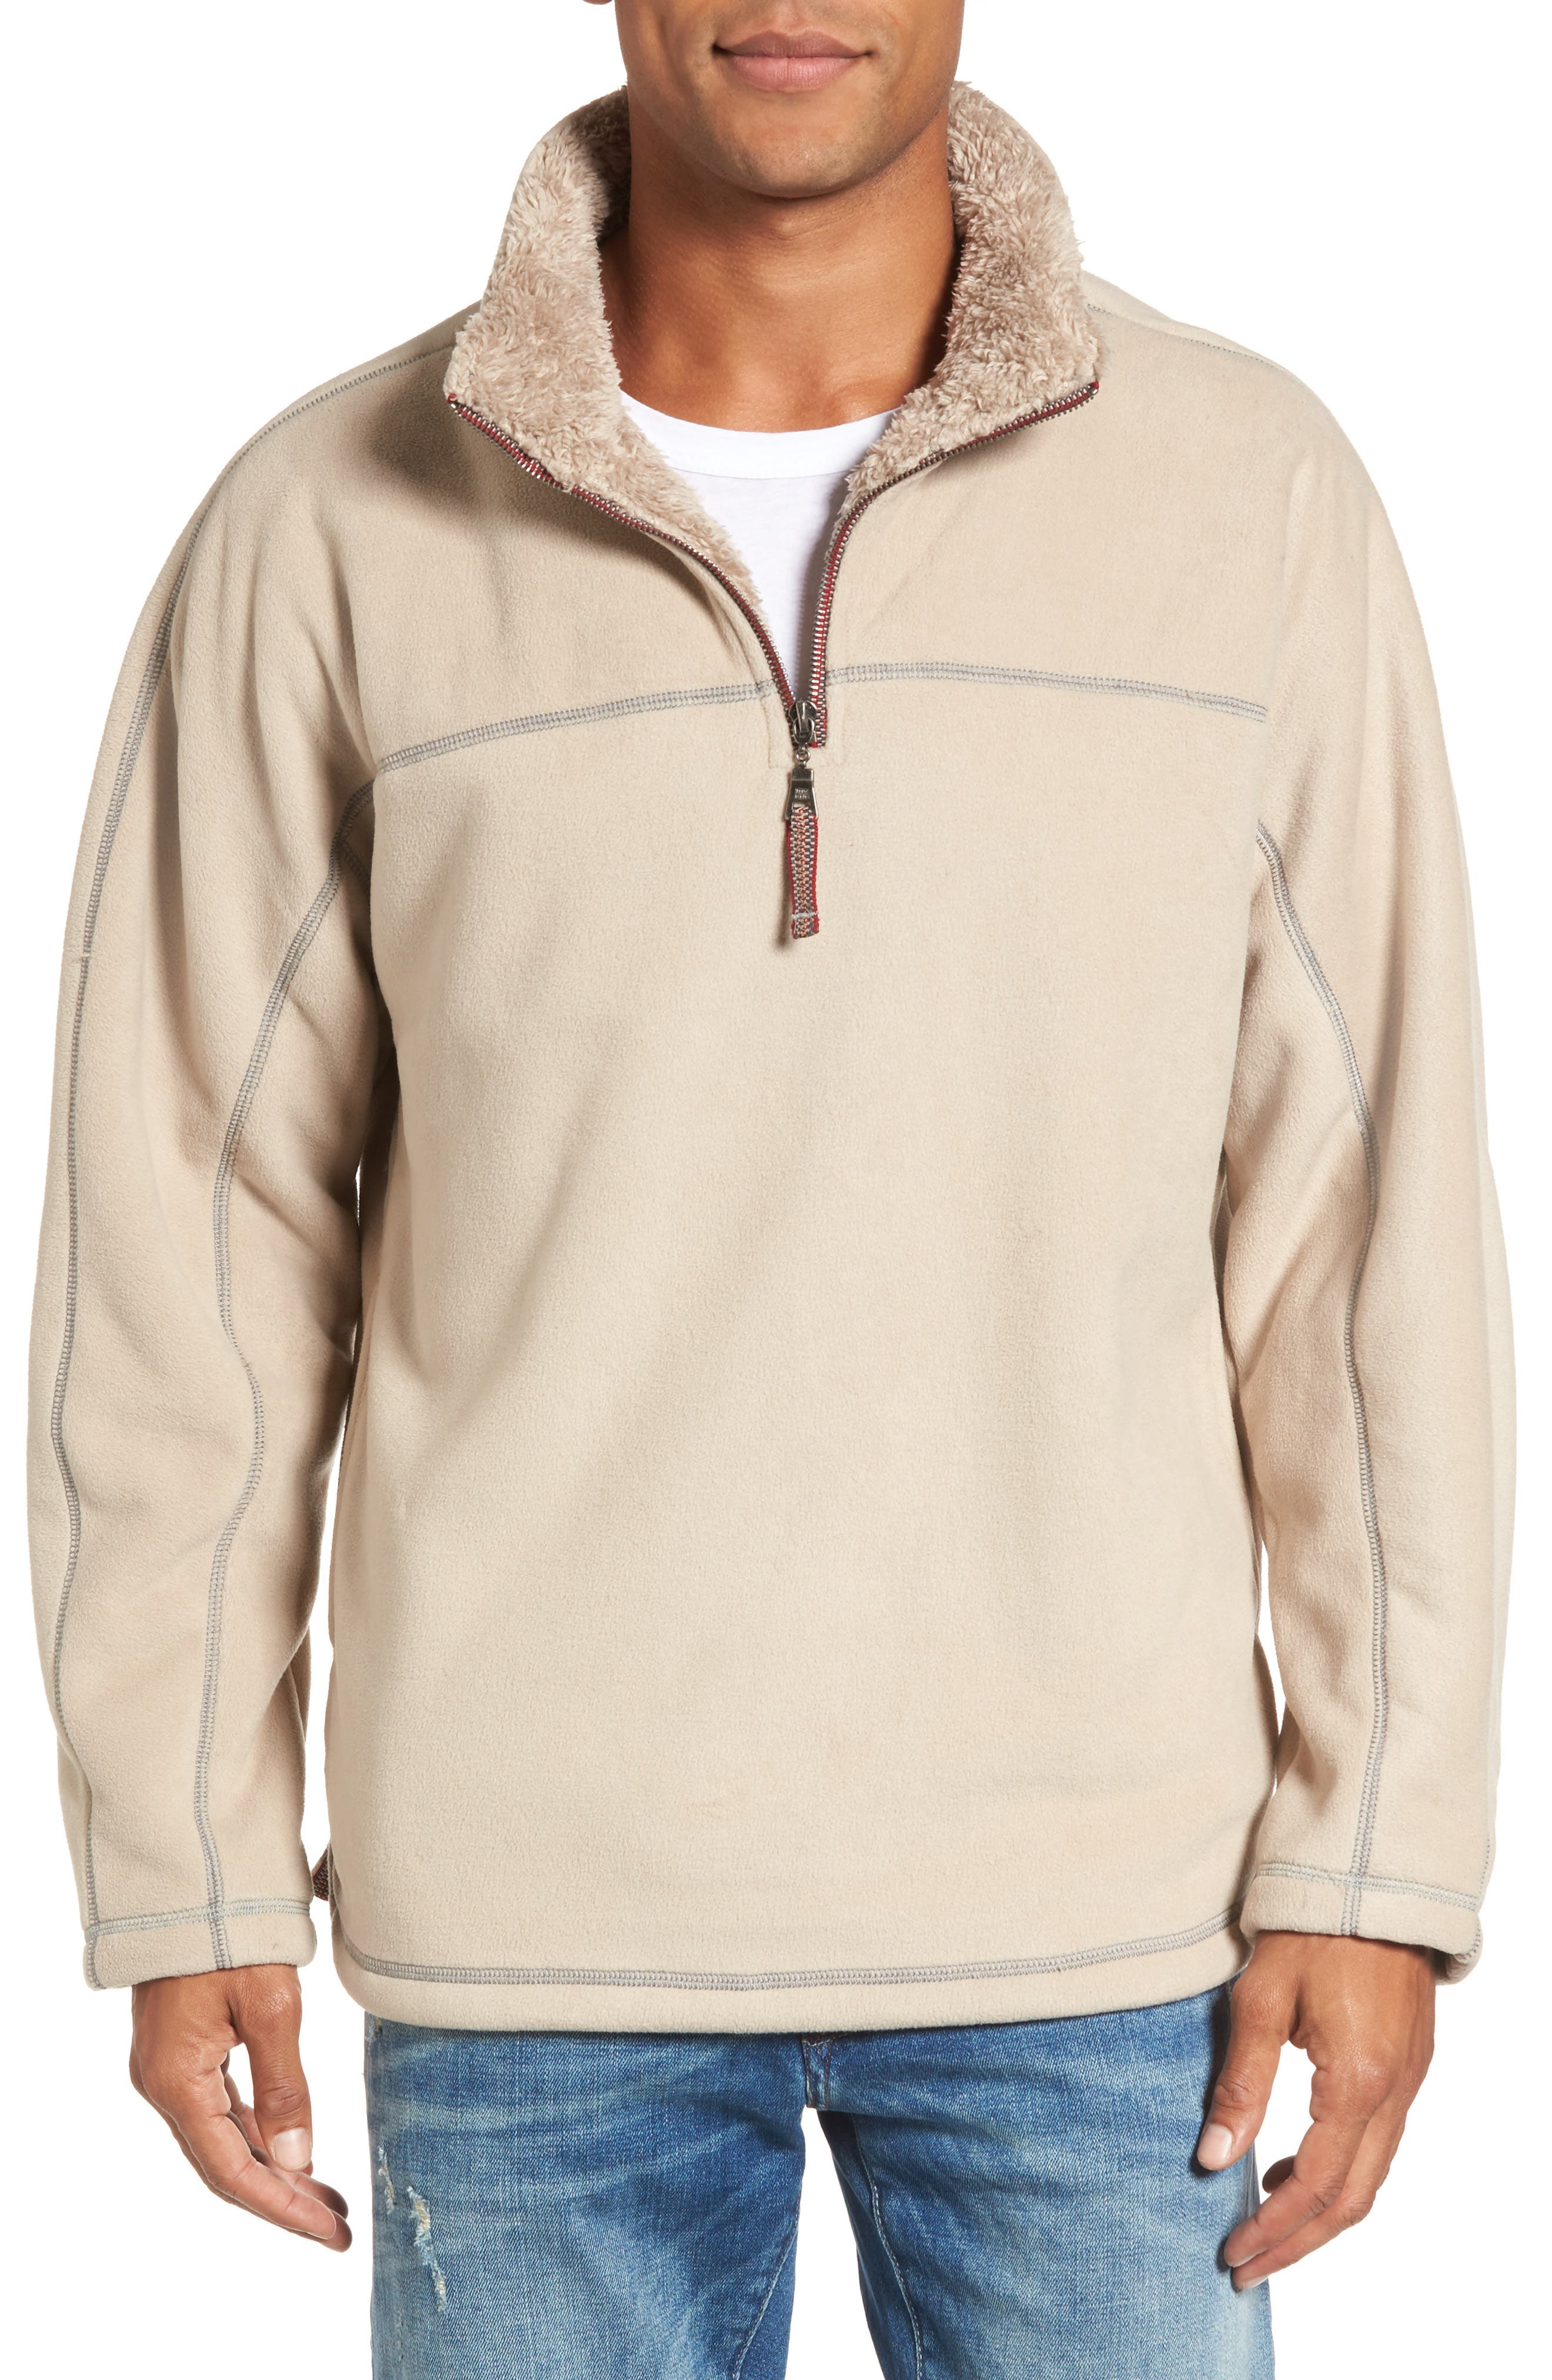 Bonded Polar Fleece Lined Pullover,                             Main thumbnail 1, color,                             Sand